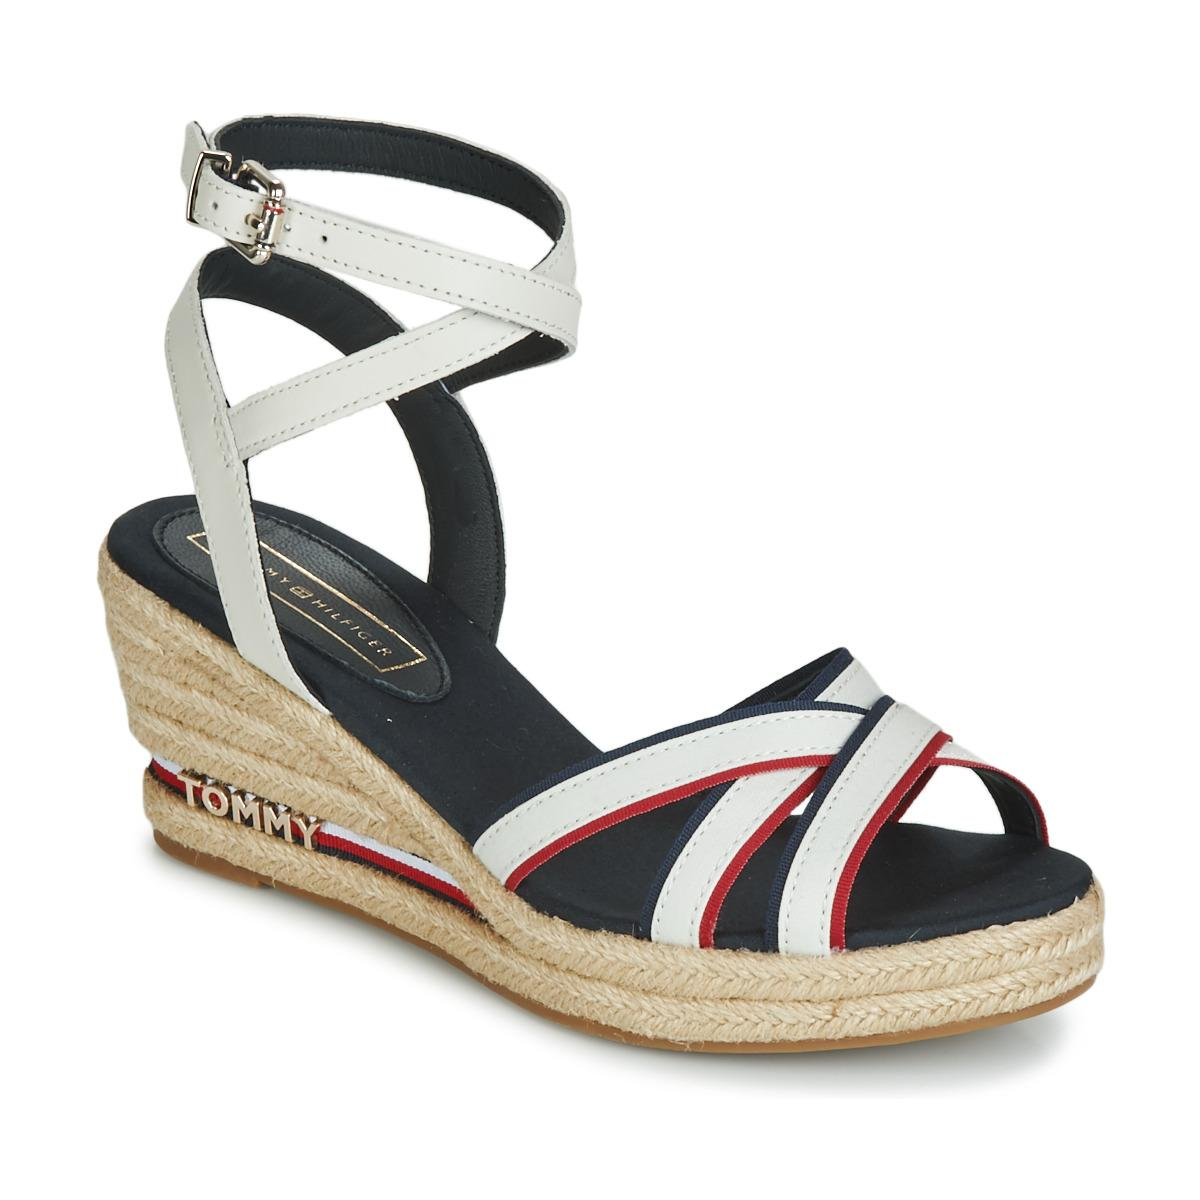 0b8b02a57 Tommy Hilfiger Iconic Elba Corporate Ribbon Women s Sandals In White ...